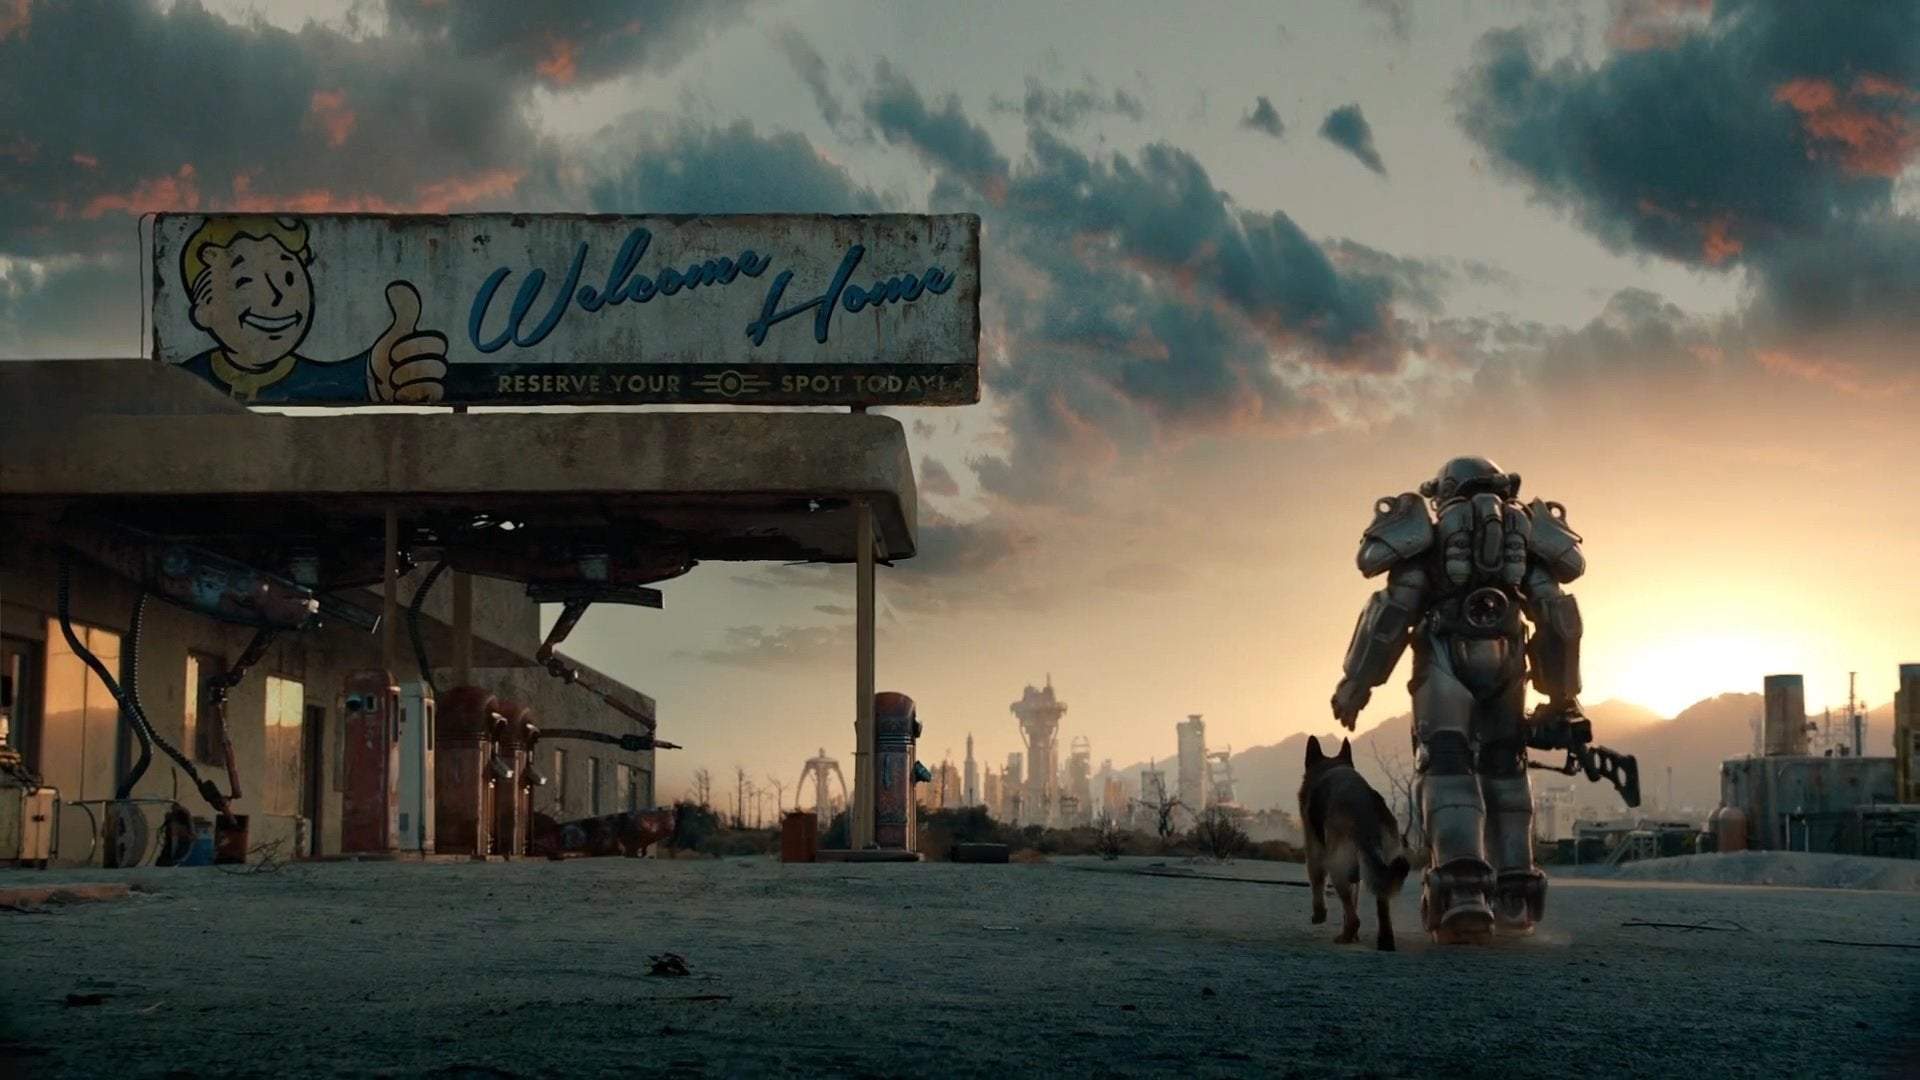 Fallout 5: Things we'd love to see from the post-apocalyptic RPG | Trusted Reviews